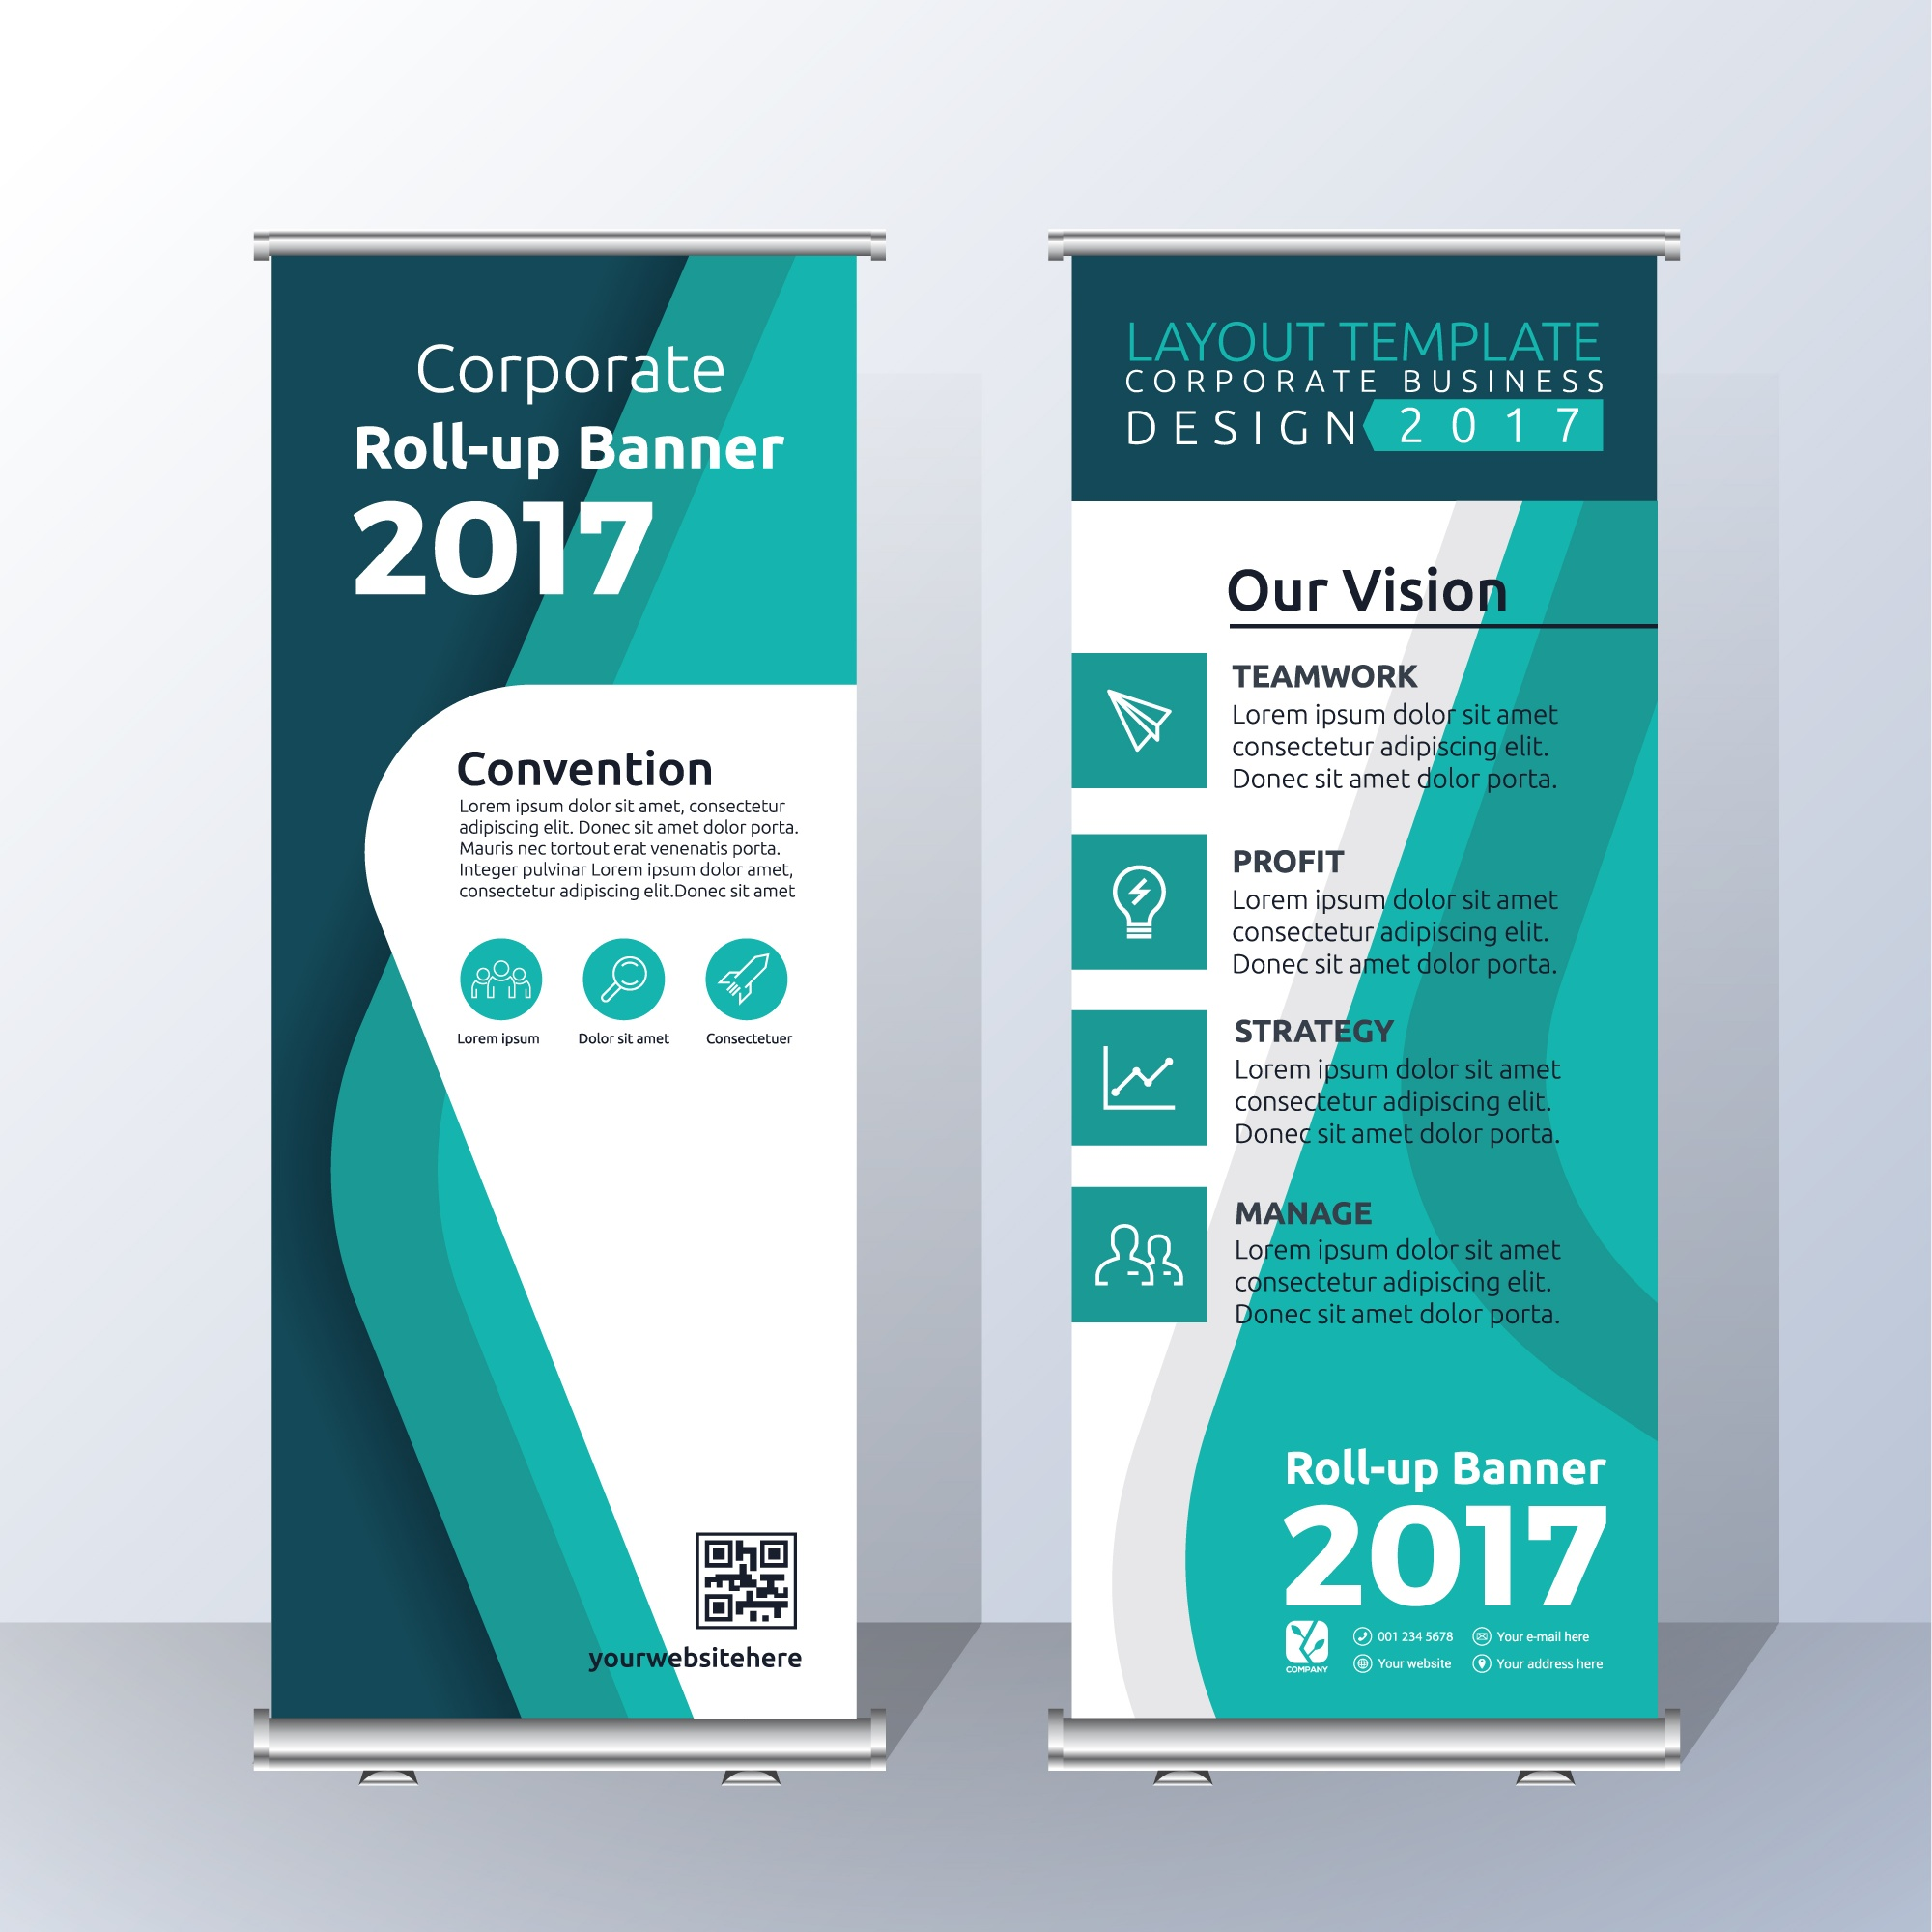 Vertical Roll Up Banner Template Design for Announce and Advertising. Abstract green Color Scheme Layout Template